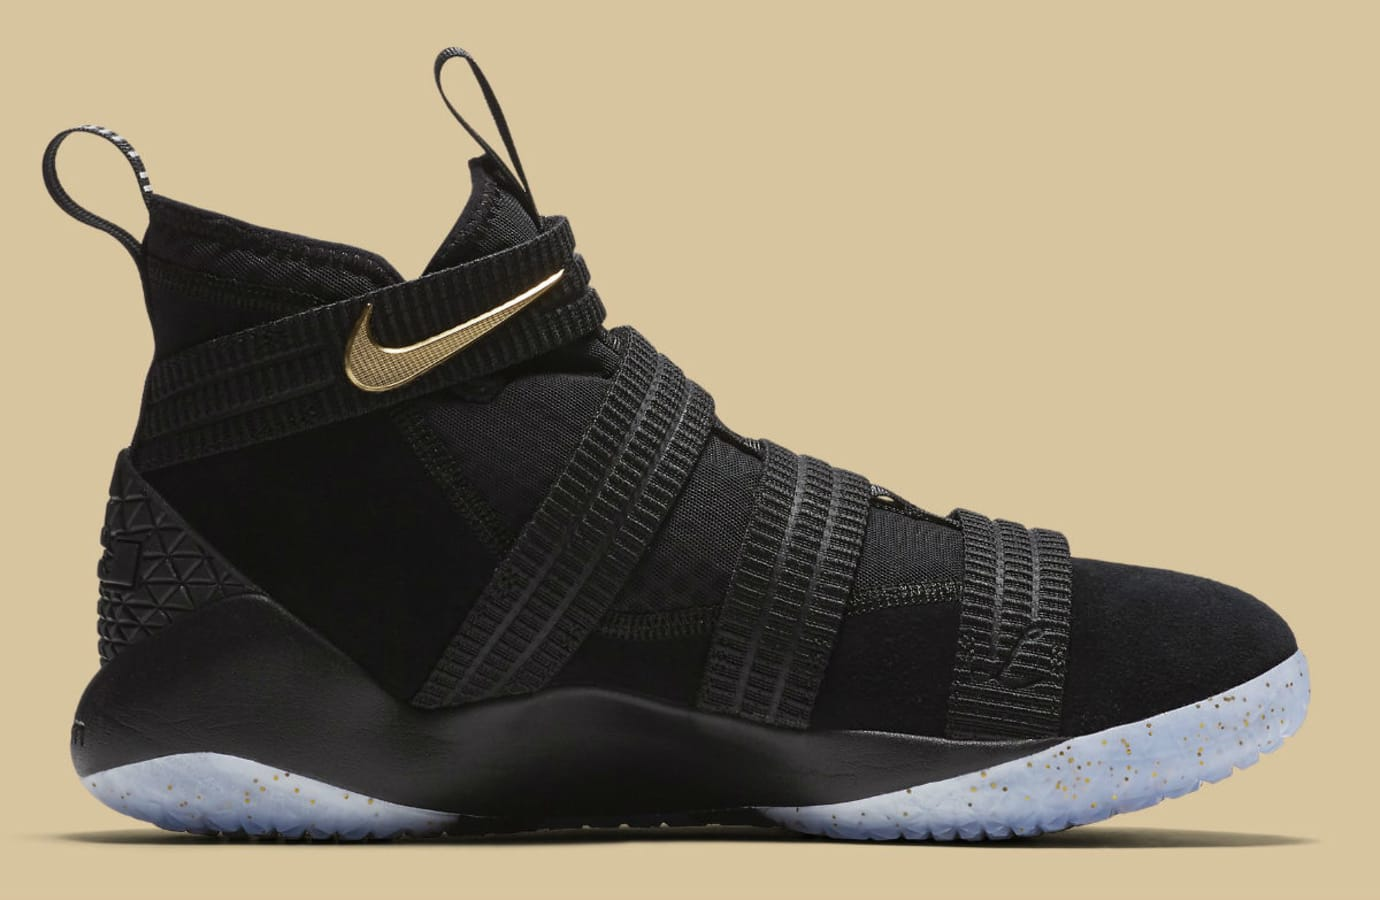 7324cabad2b Nike LeBron Soldier 11 SFG Black Gold Finals Release Date Medial